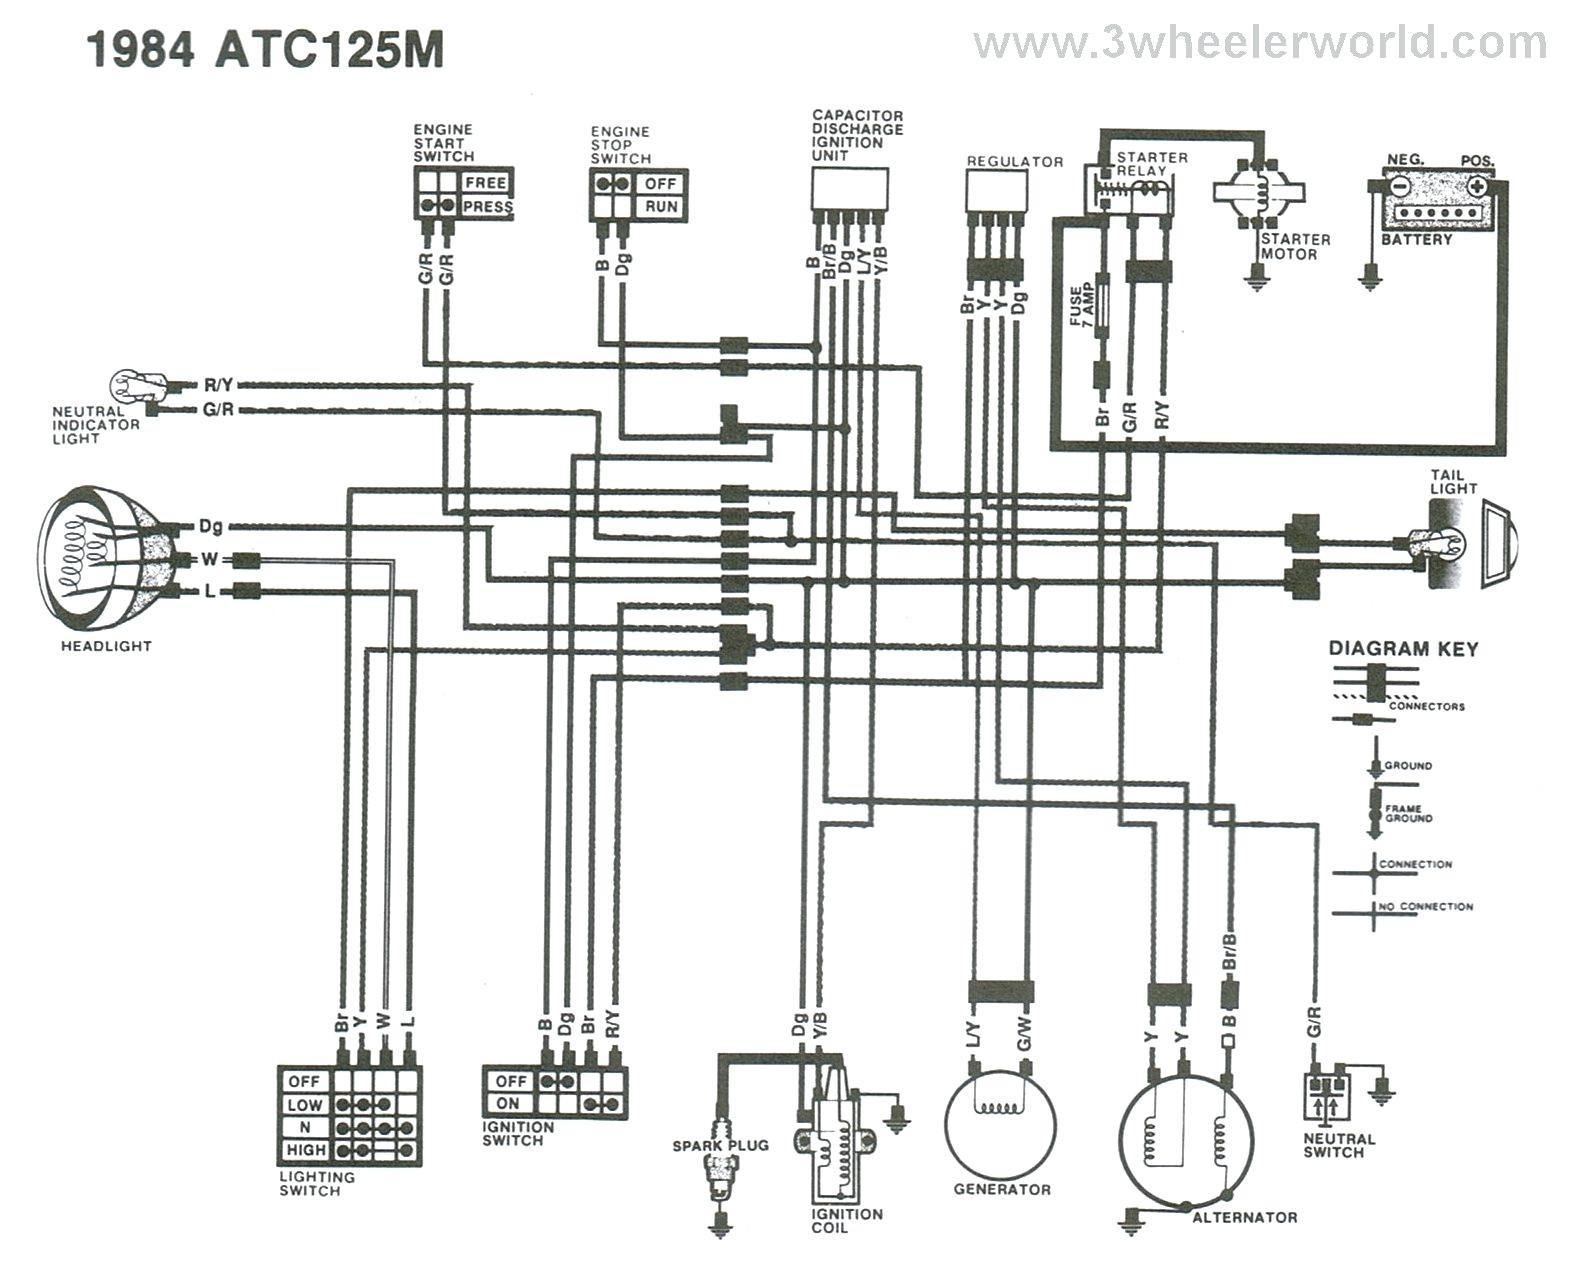 hight resolution of honda xrm 125 engine diagram yamaha rs 100 cdi wiring diagram motorcycle wiring schematics honda xrm